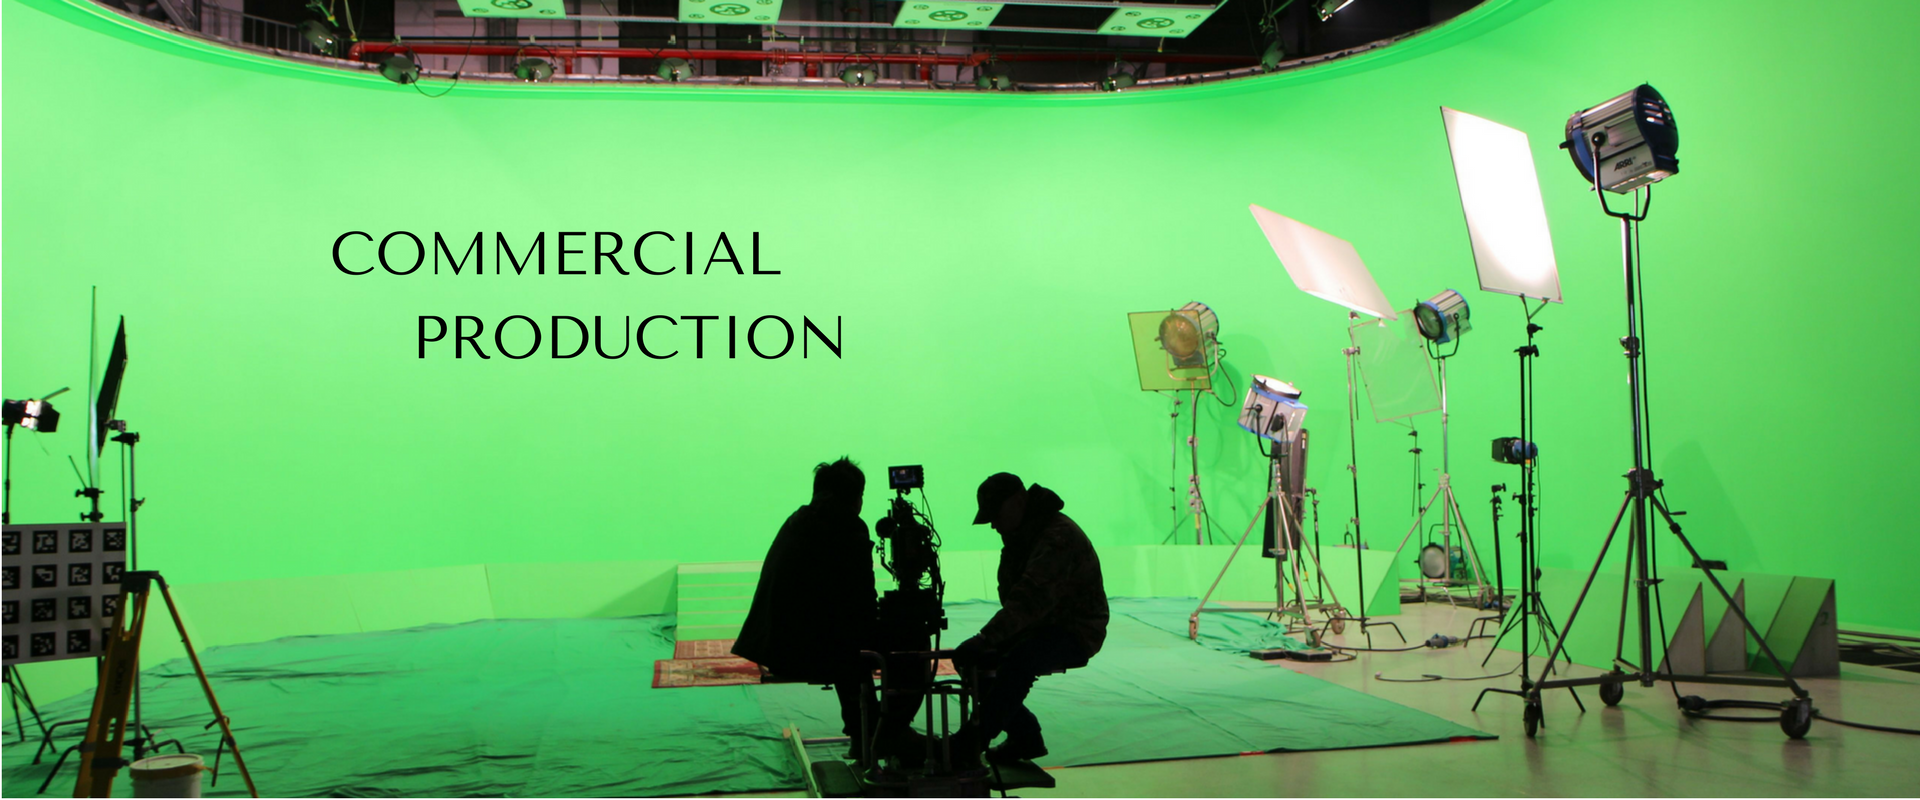 COMMERCIAL PRODUCTION (2)